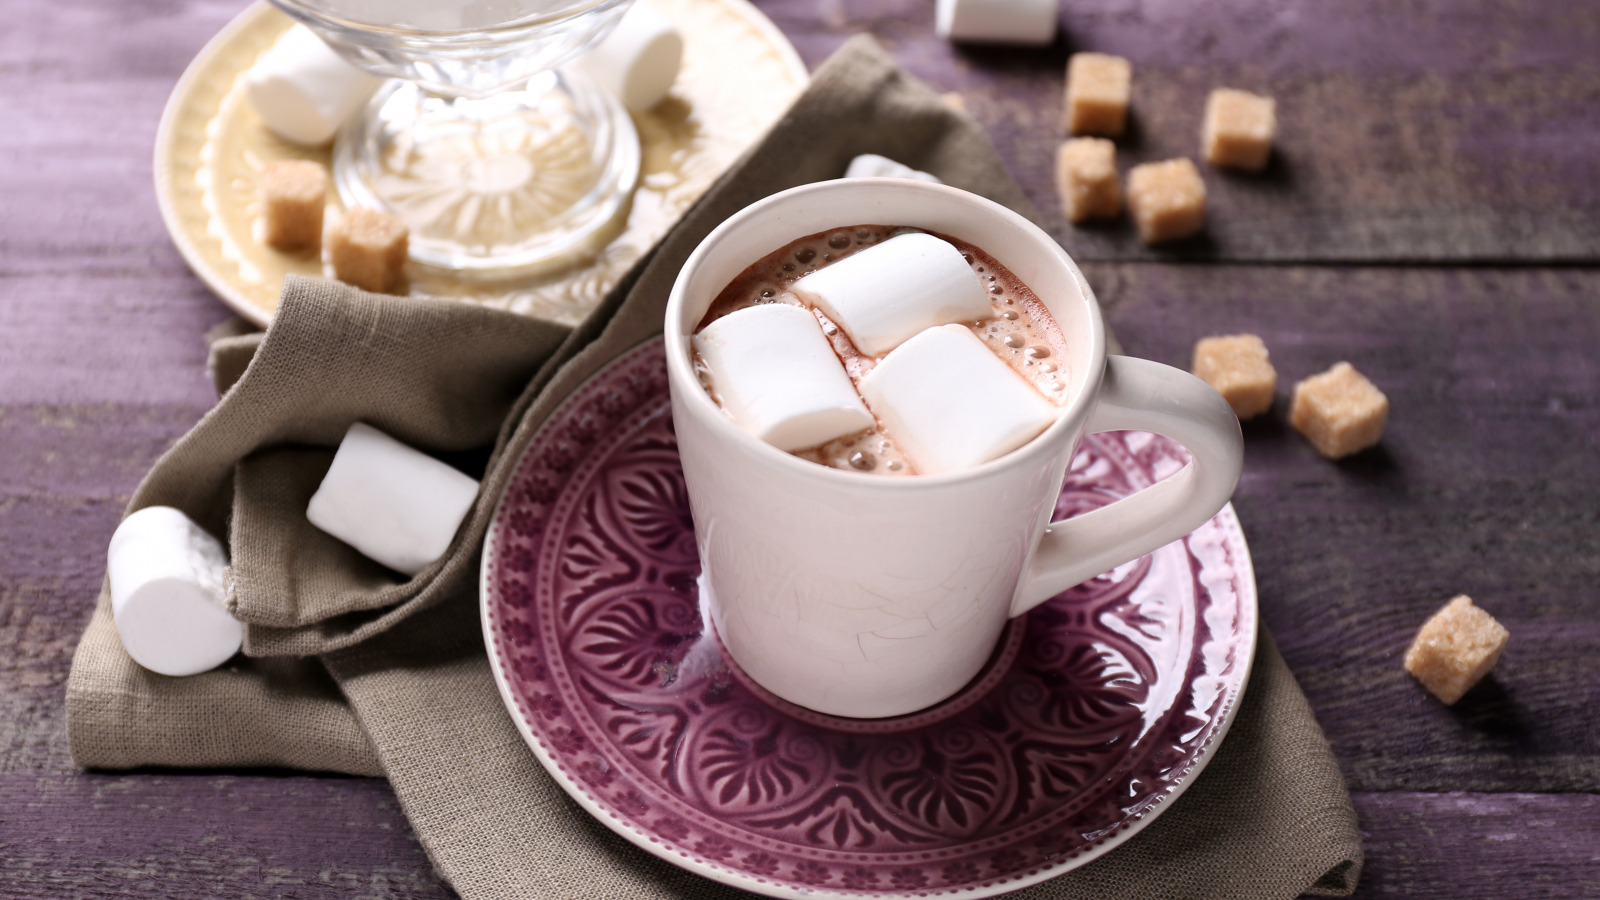 https://img1.goodfon.ru/original/1600x900/e/98/cocoa-marshmallow-cup-hot-3396.jpg